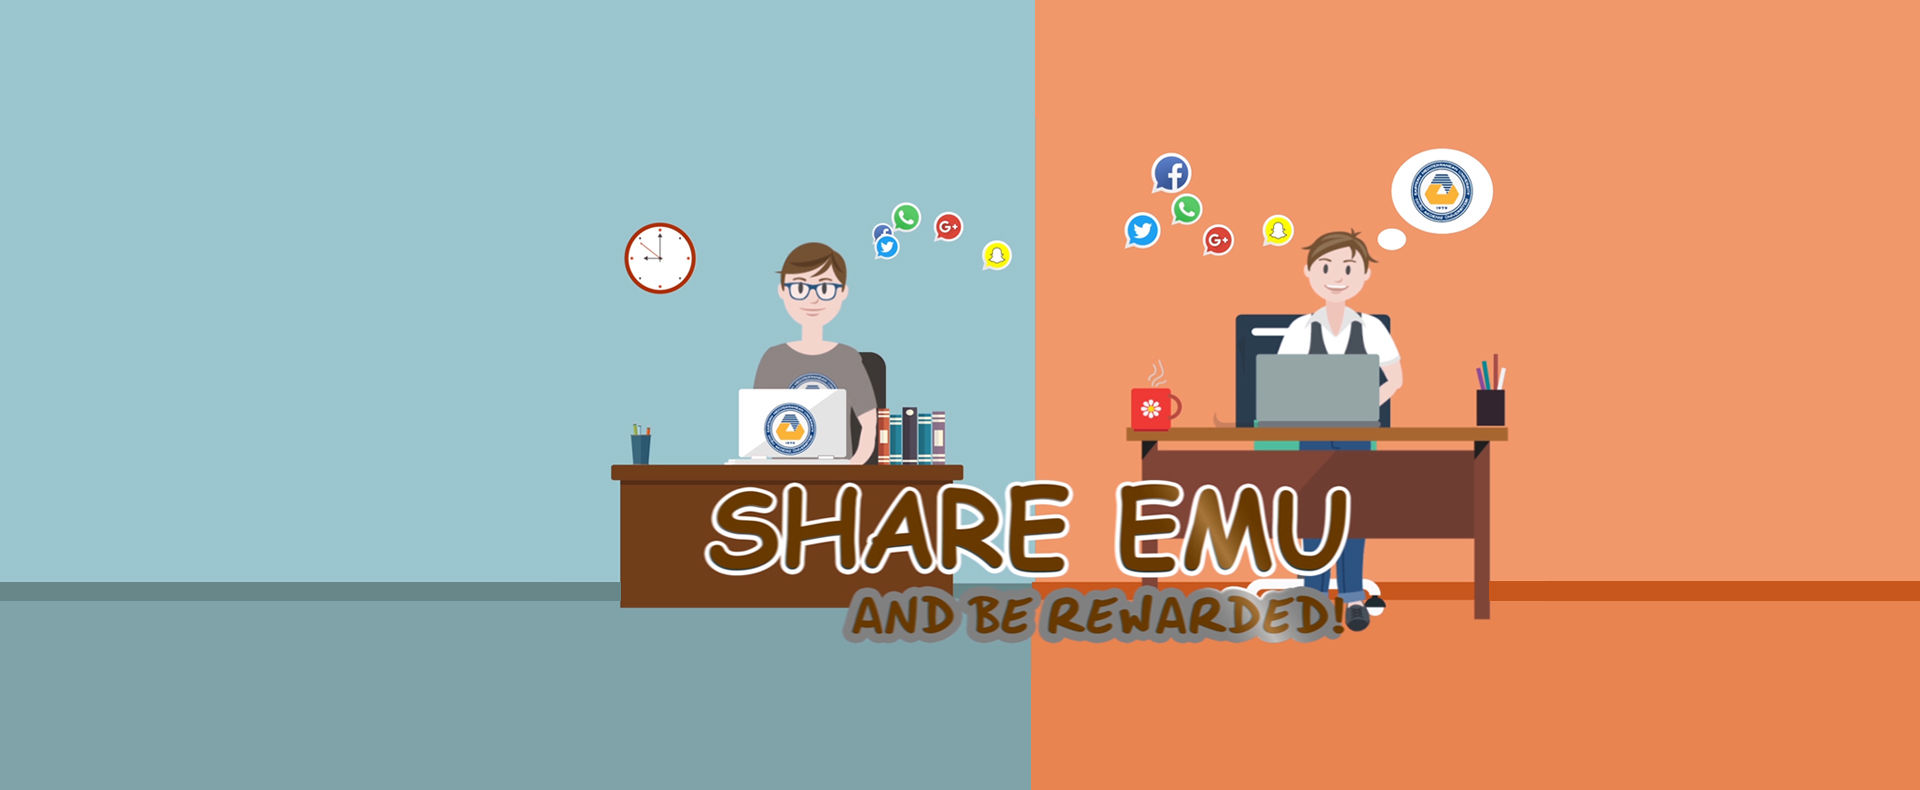 Share EMU, Reward and be Rewarded